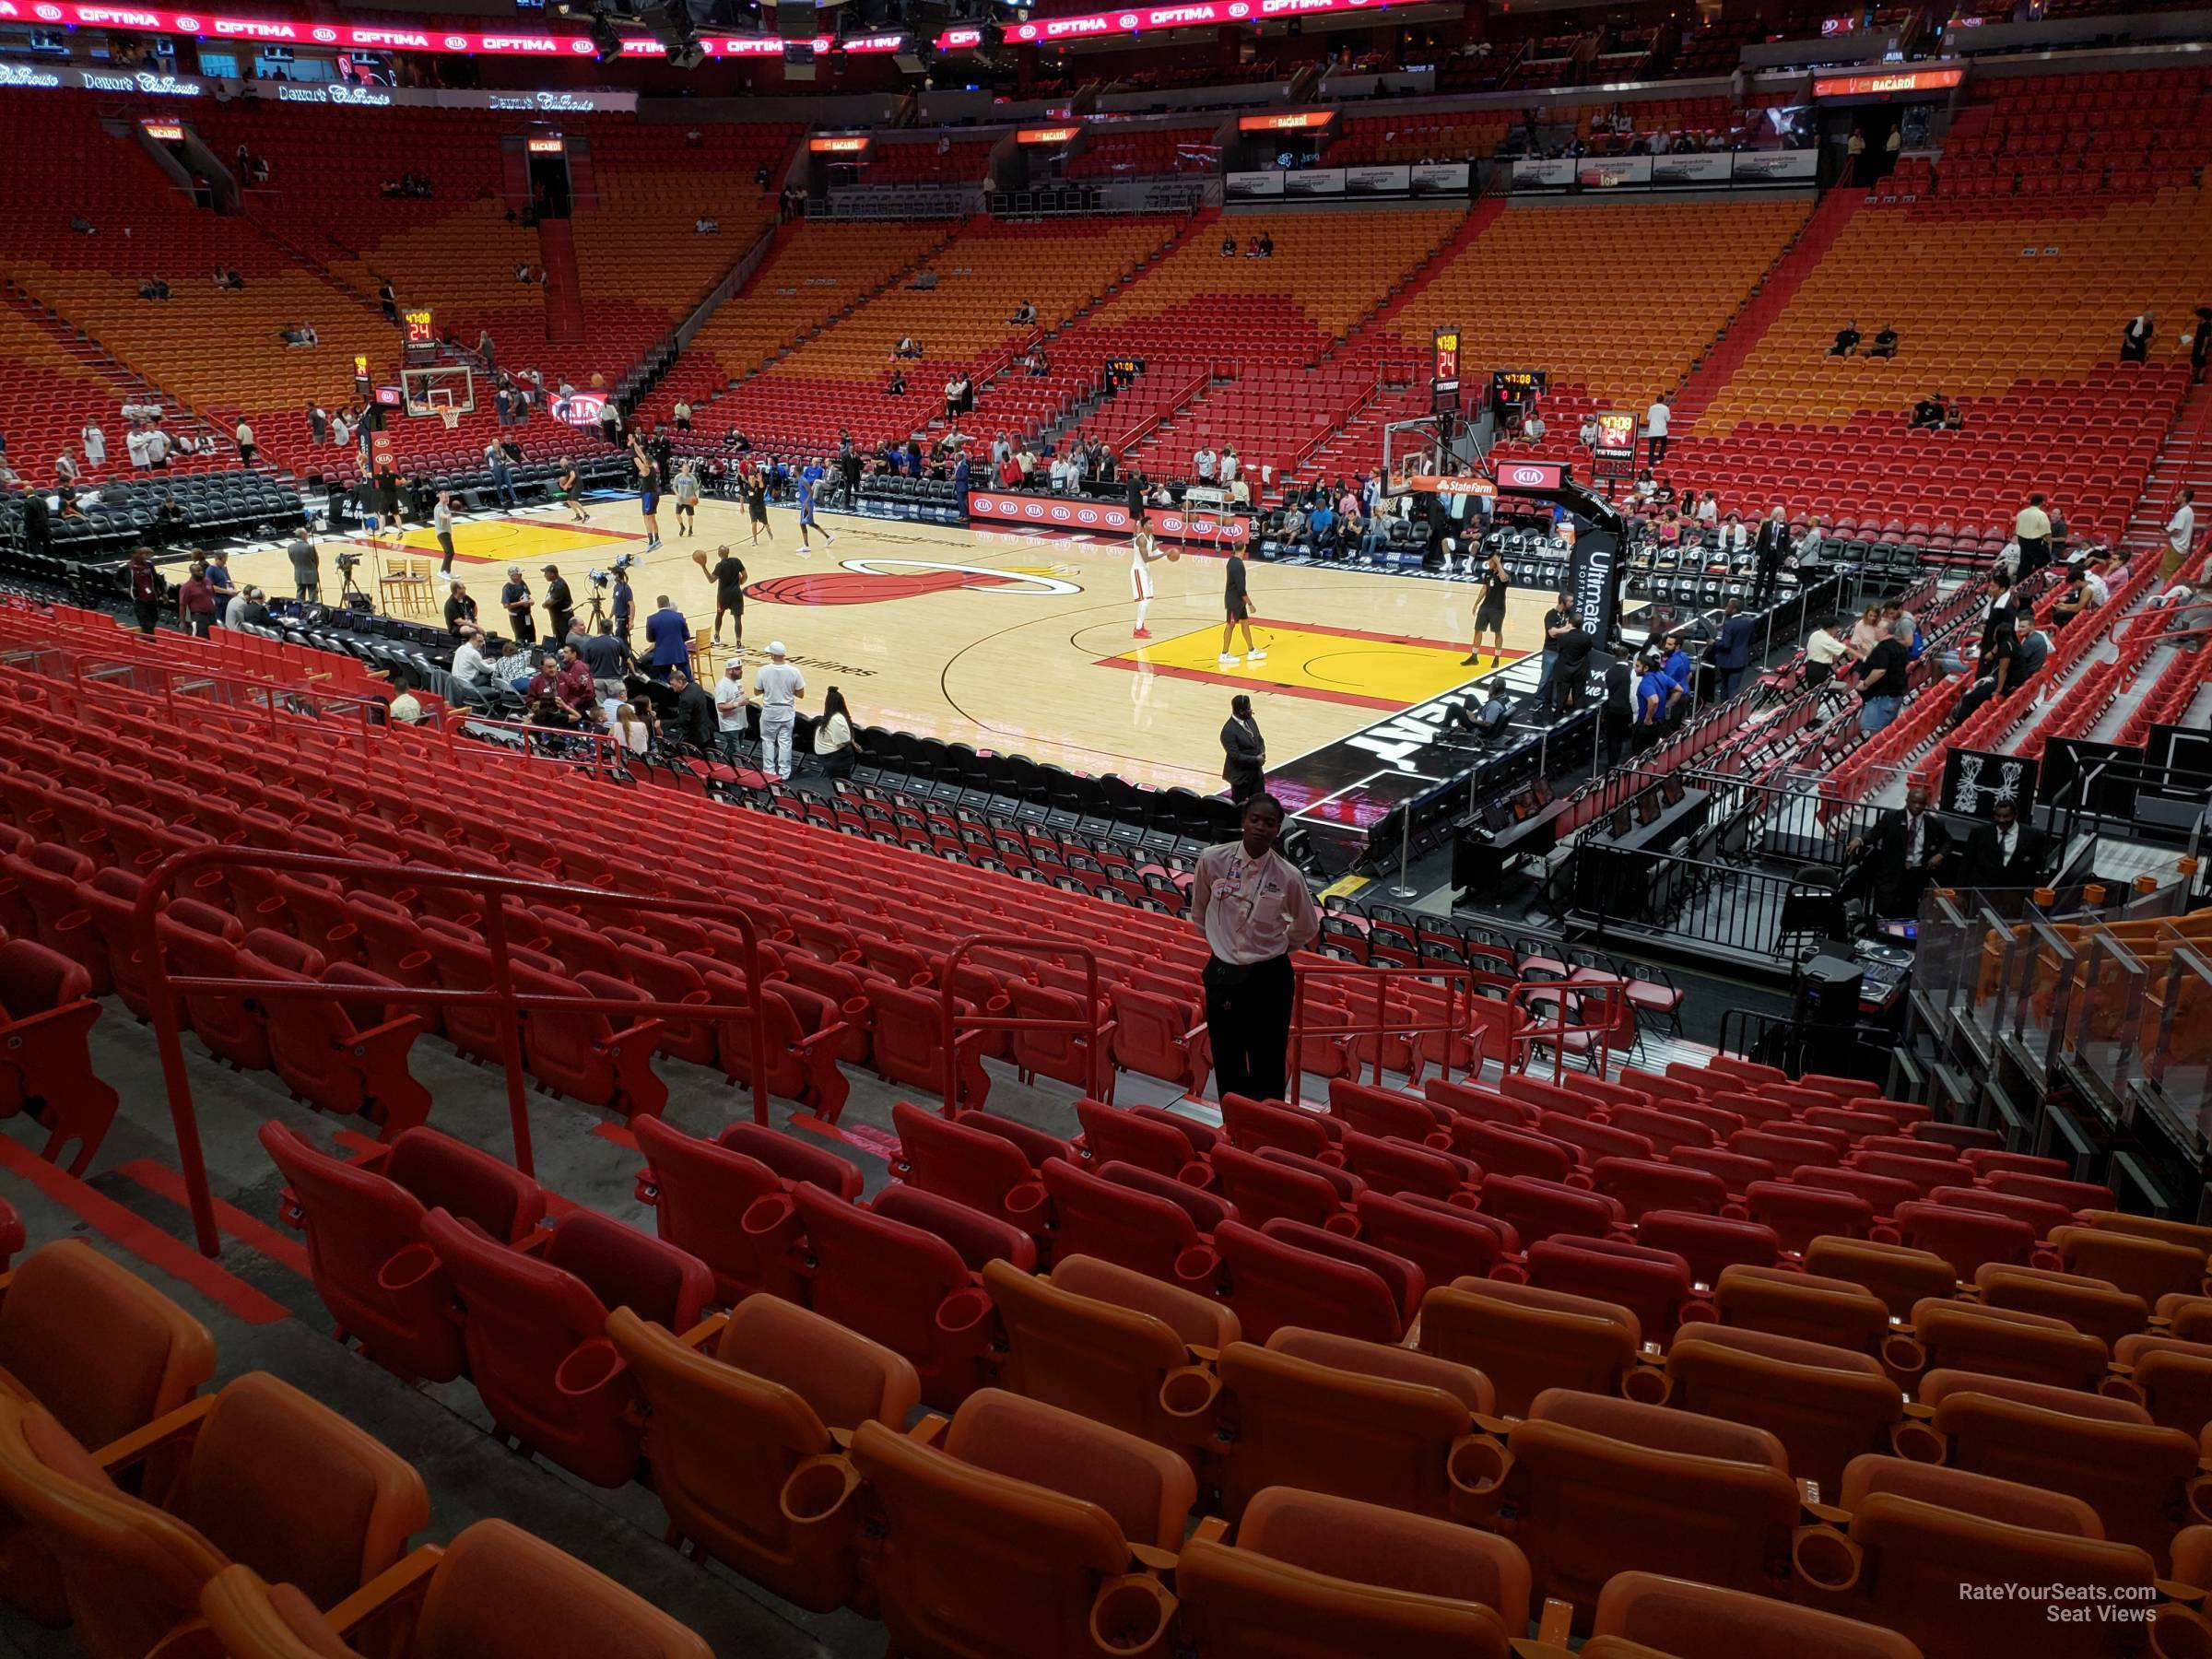 section 116 at americanairlines arena - miami heat